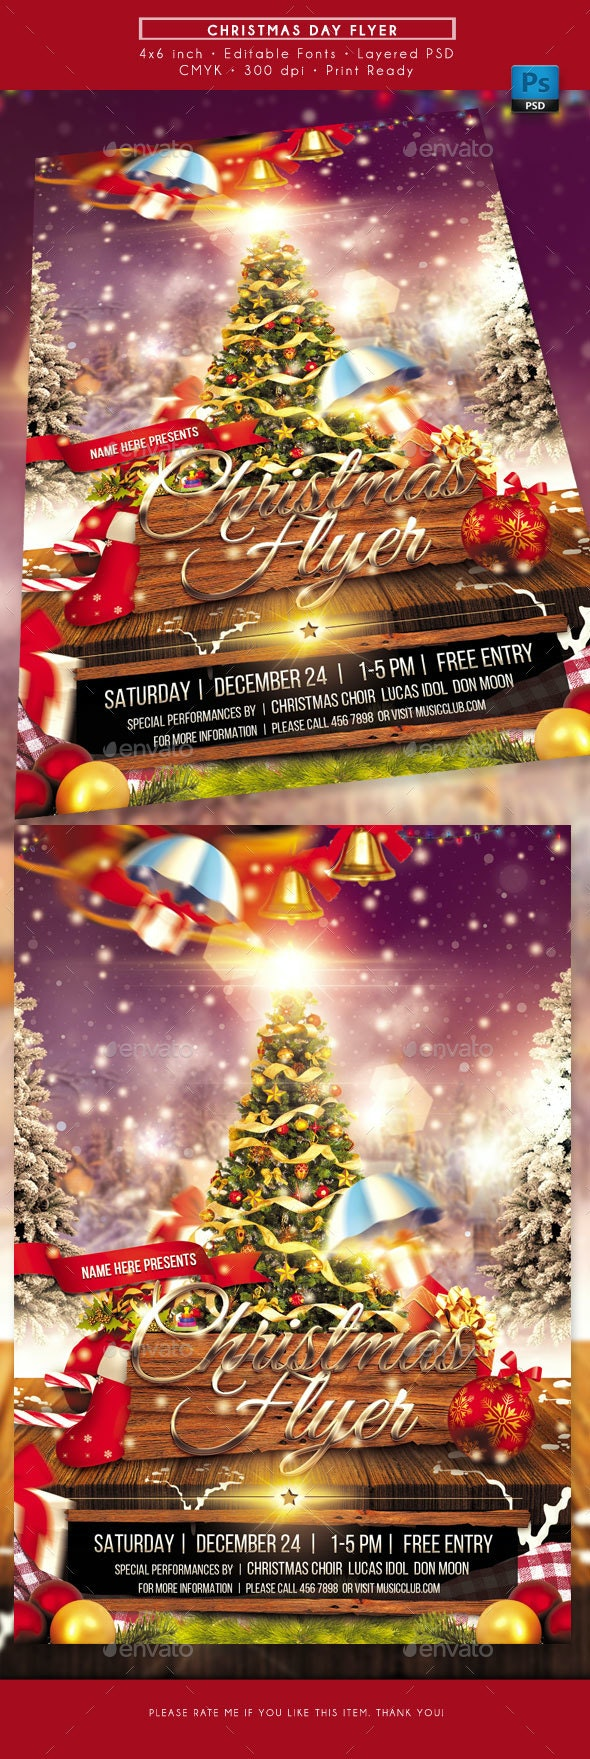 Christmas Day Flyer - Holidays Events